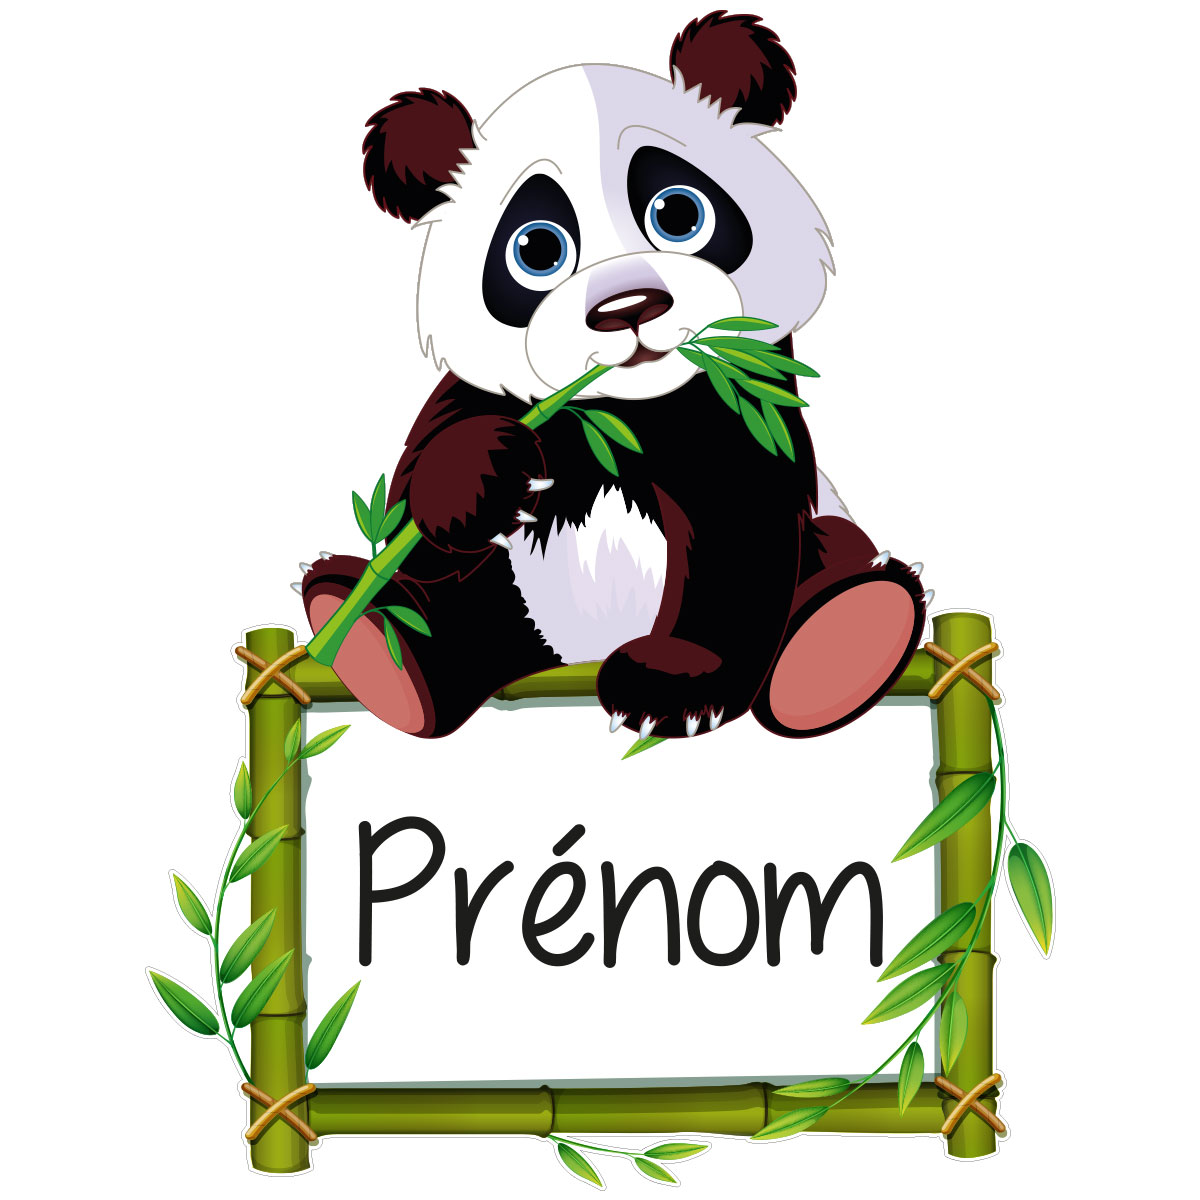 Sticker Prenom Personnalisable Panda Et Son Bambou Stickers